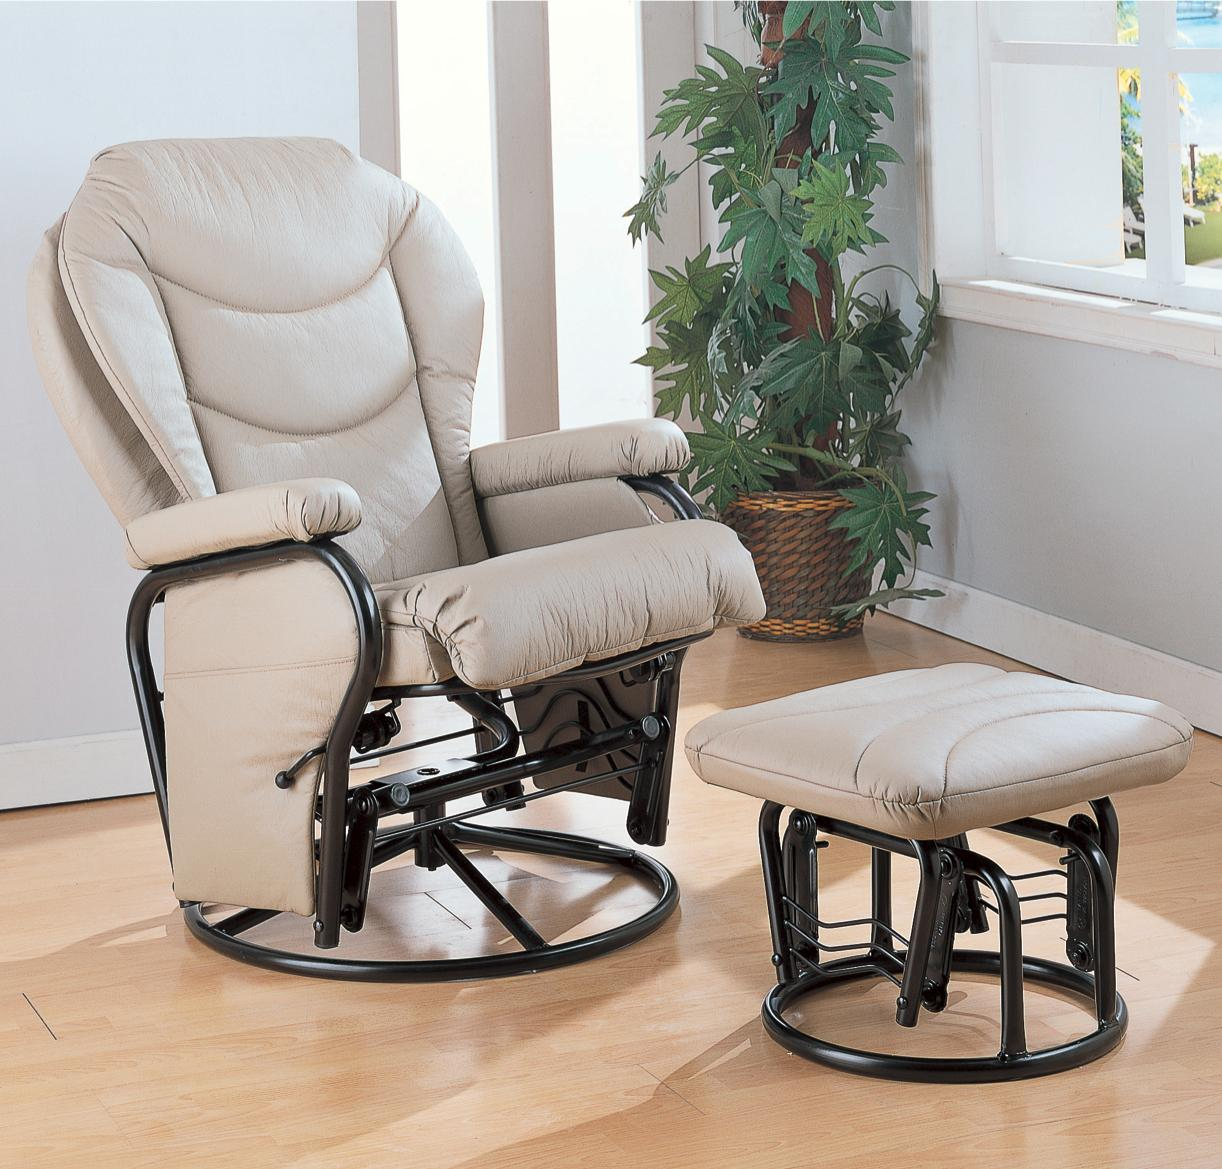 Coaster Recliners with Ottomans Recliner with Ottoman - Item Number: 7040